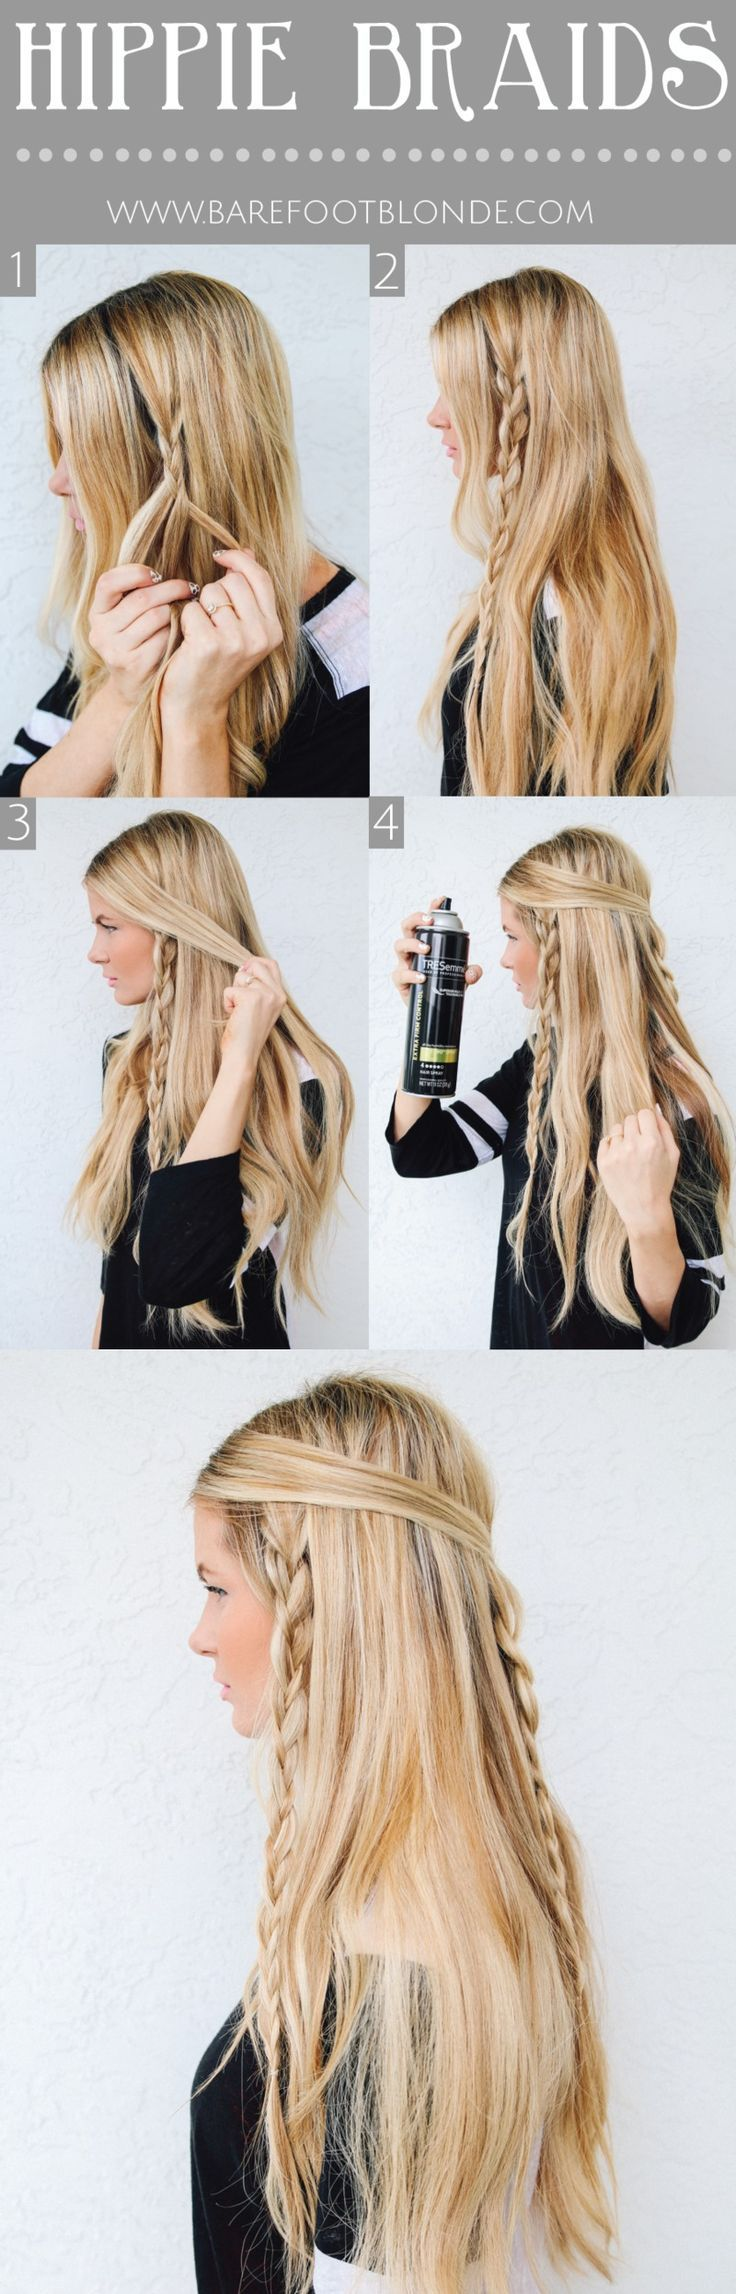 """Hippie Braids (Though """"Hippie Braids"""" means """"Never using hair spray""""… that just makes you a wanna-be)"""